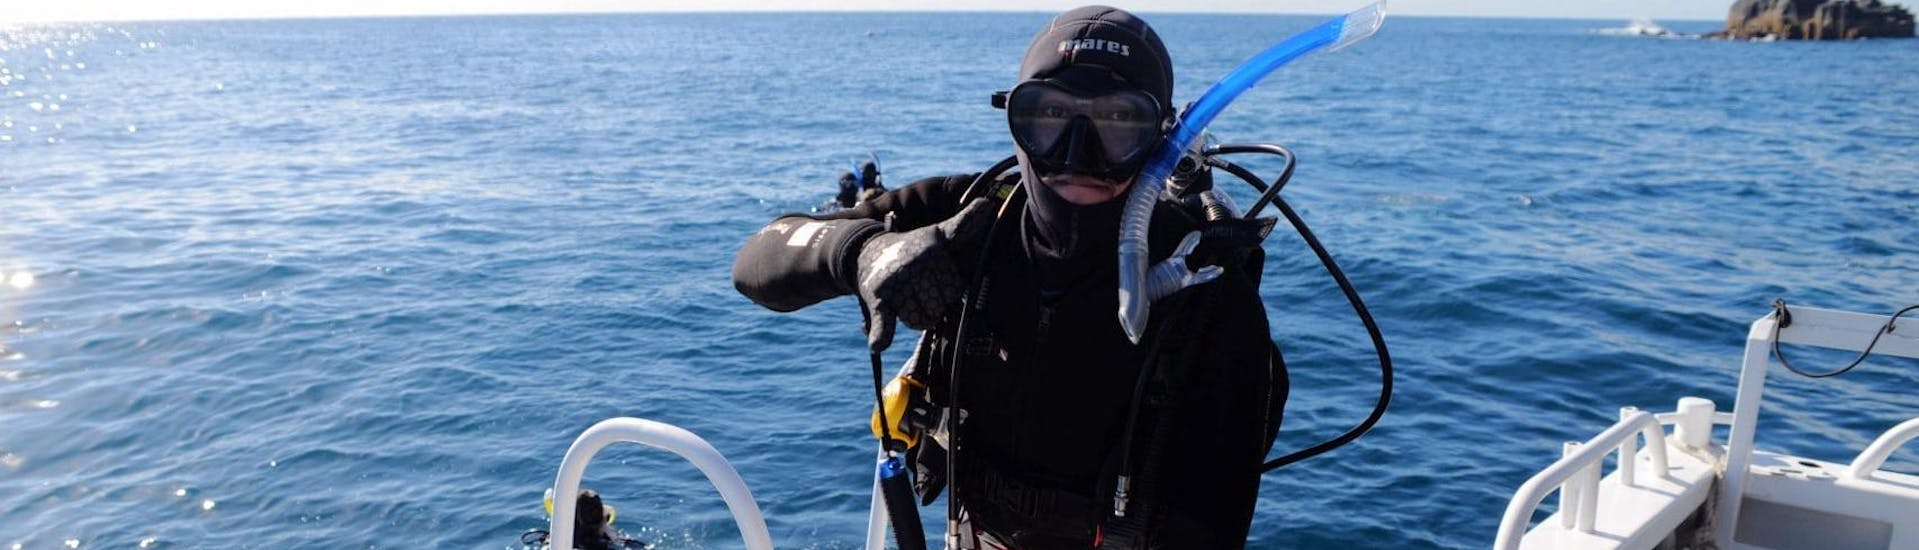 Under the guidance of a qualified dive instructor from Gold Coast Dive Centre, a man is preparing for his Discover Scuba Diving at Cook Island for Beginners.